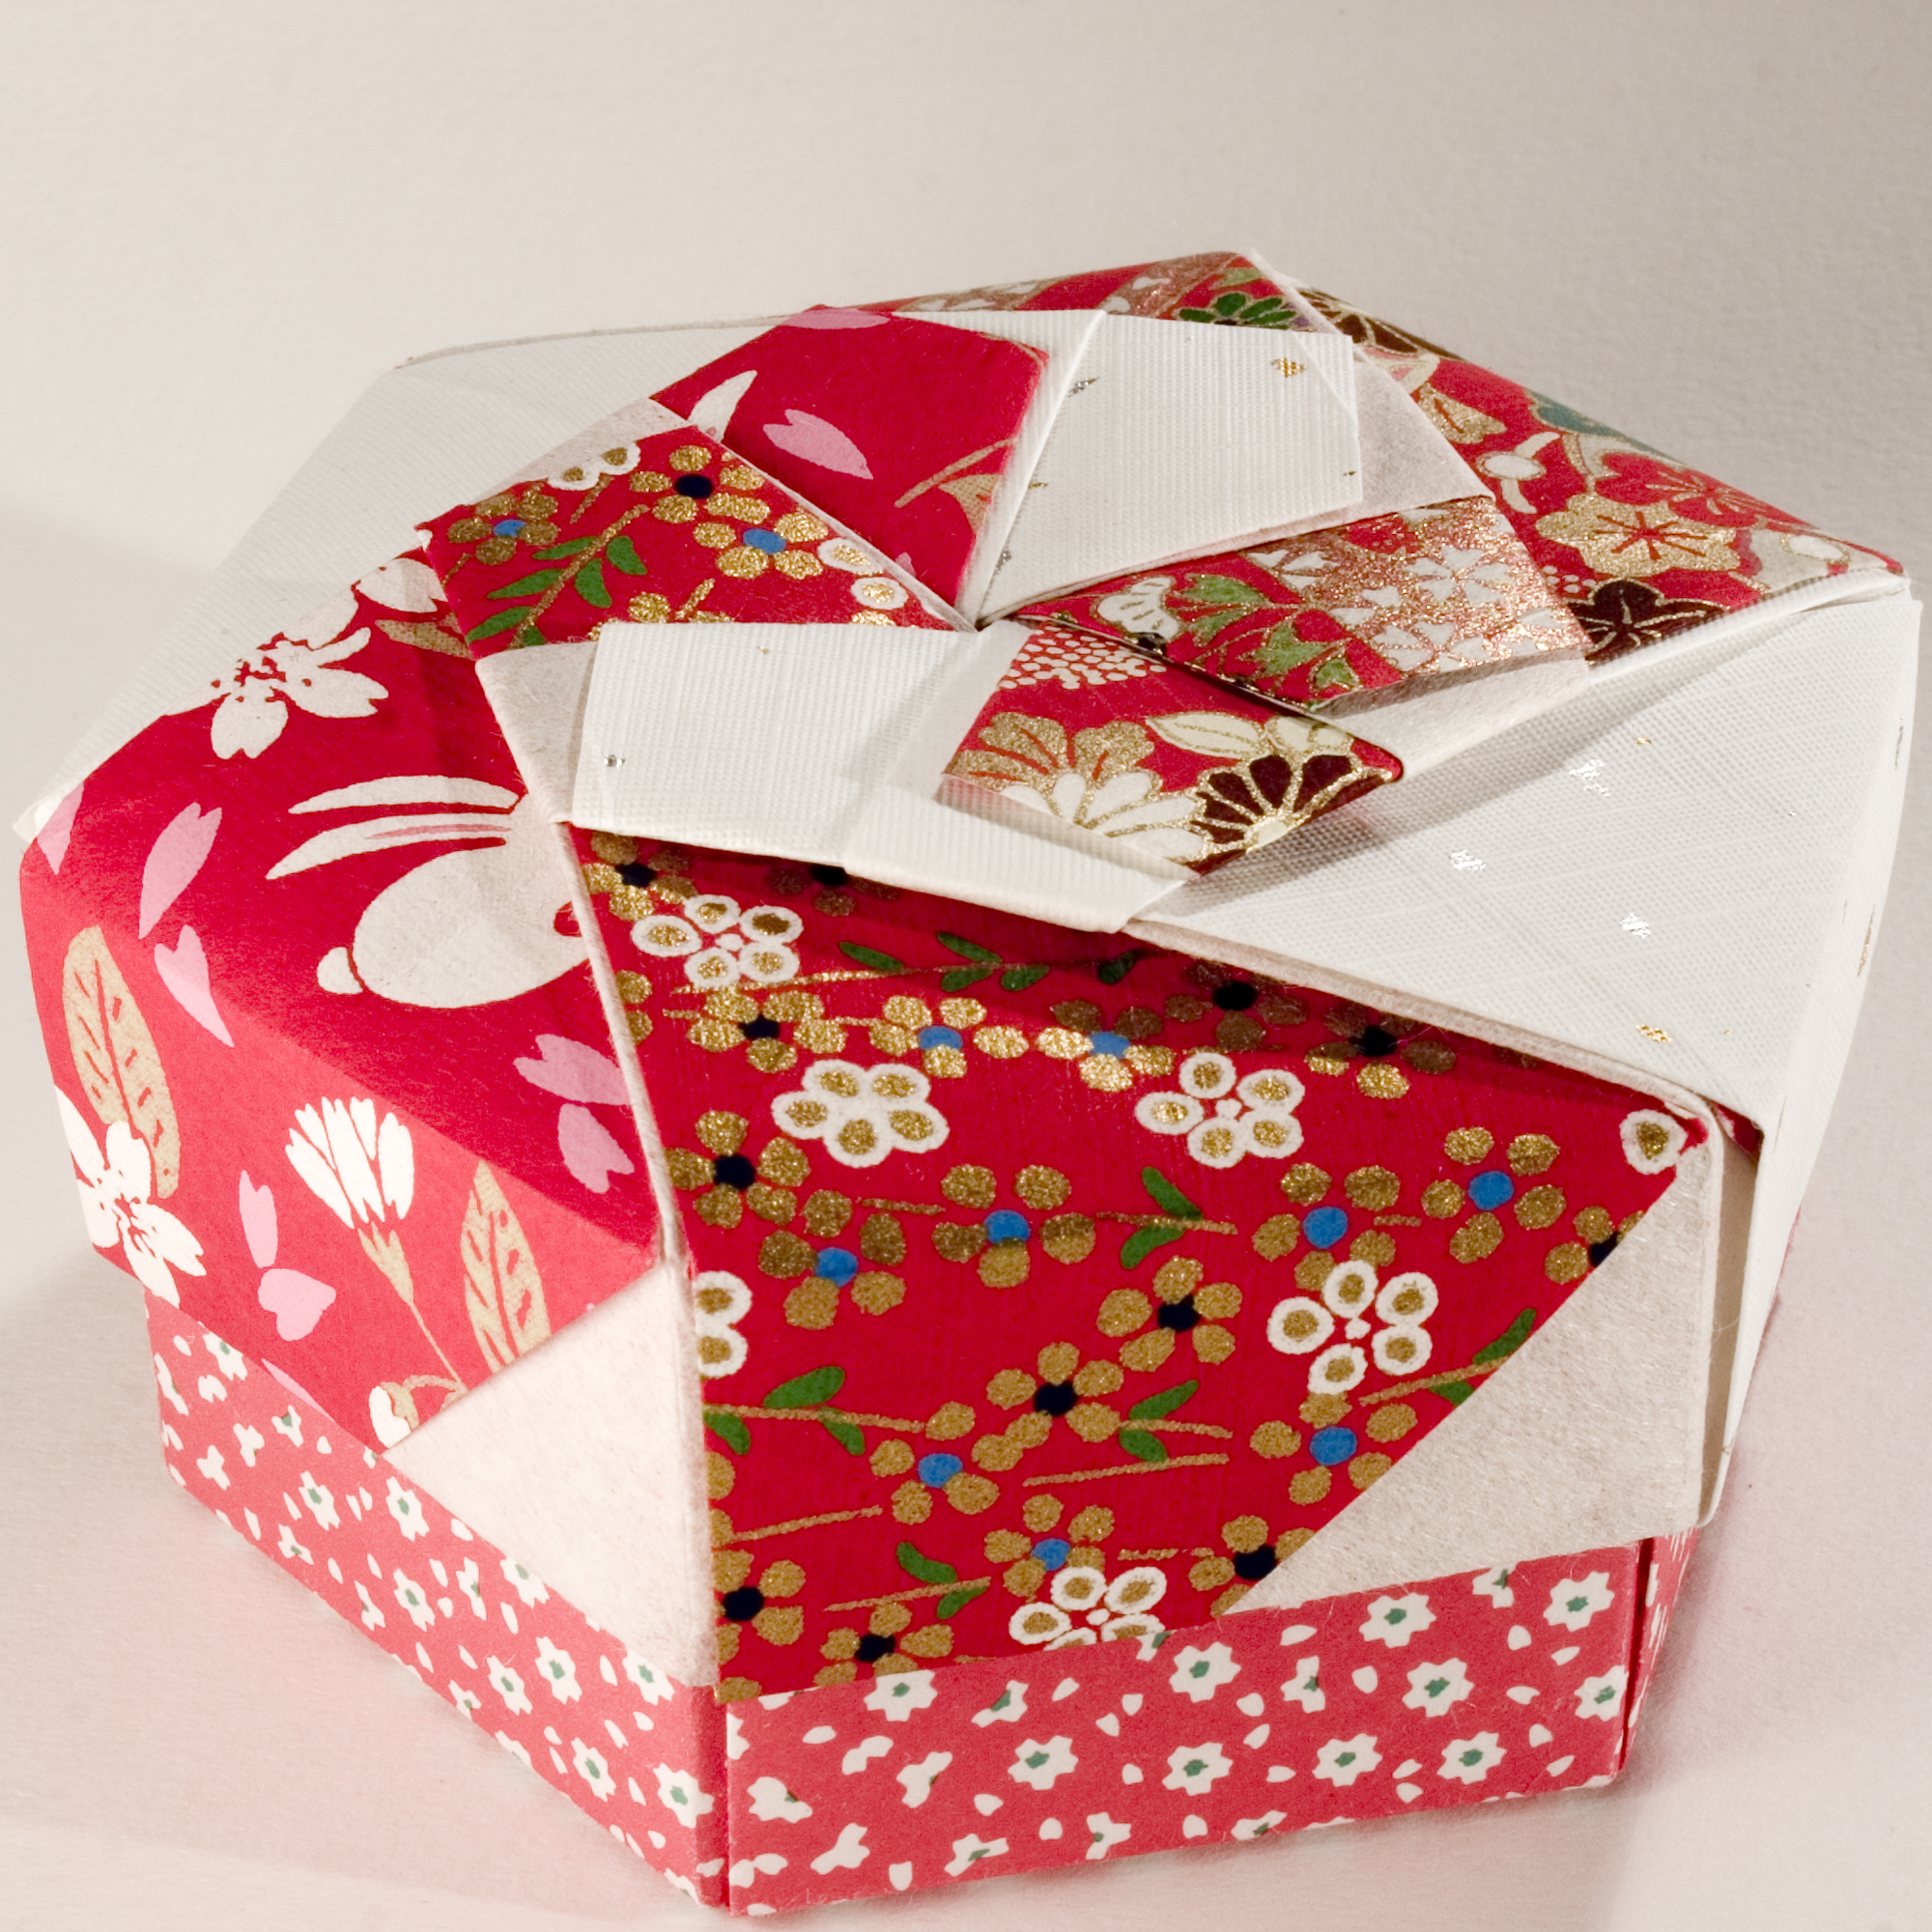 Small Decorative Gift Boxes With Lids: Decorative Hexagonal Origami Gift Box With Lid: # 07